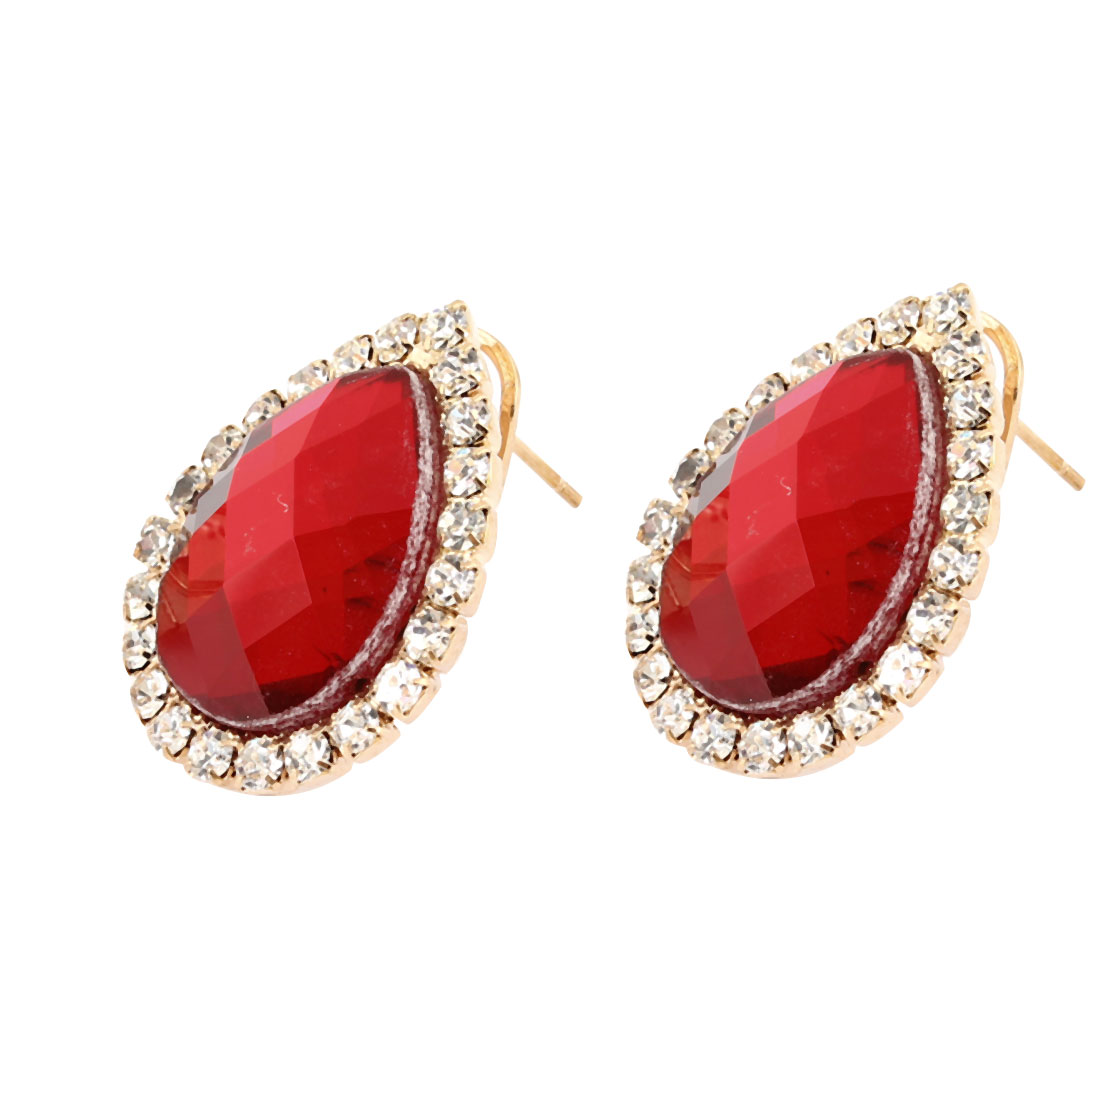 Waterdrop Design Faux Rhinestone Adorn French Clip Stud Earrings Red for Lady